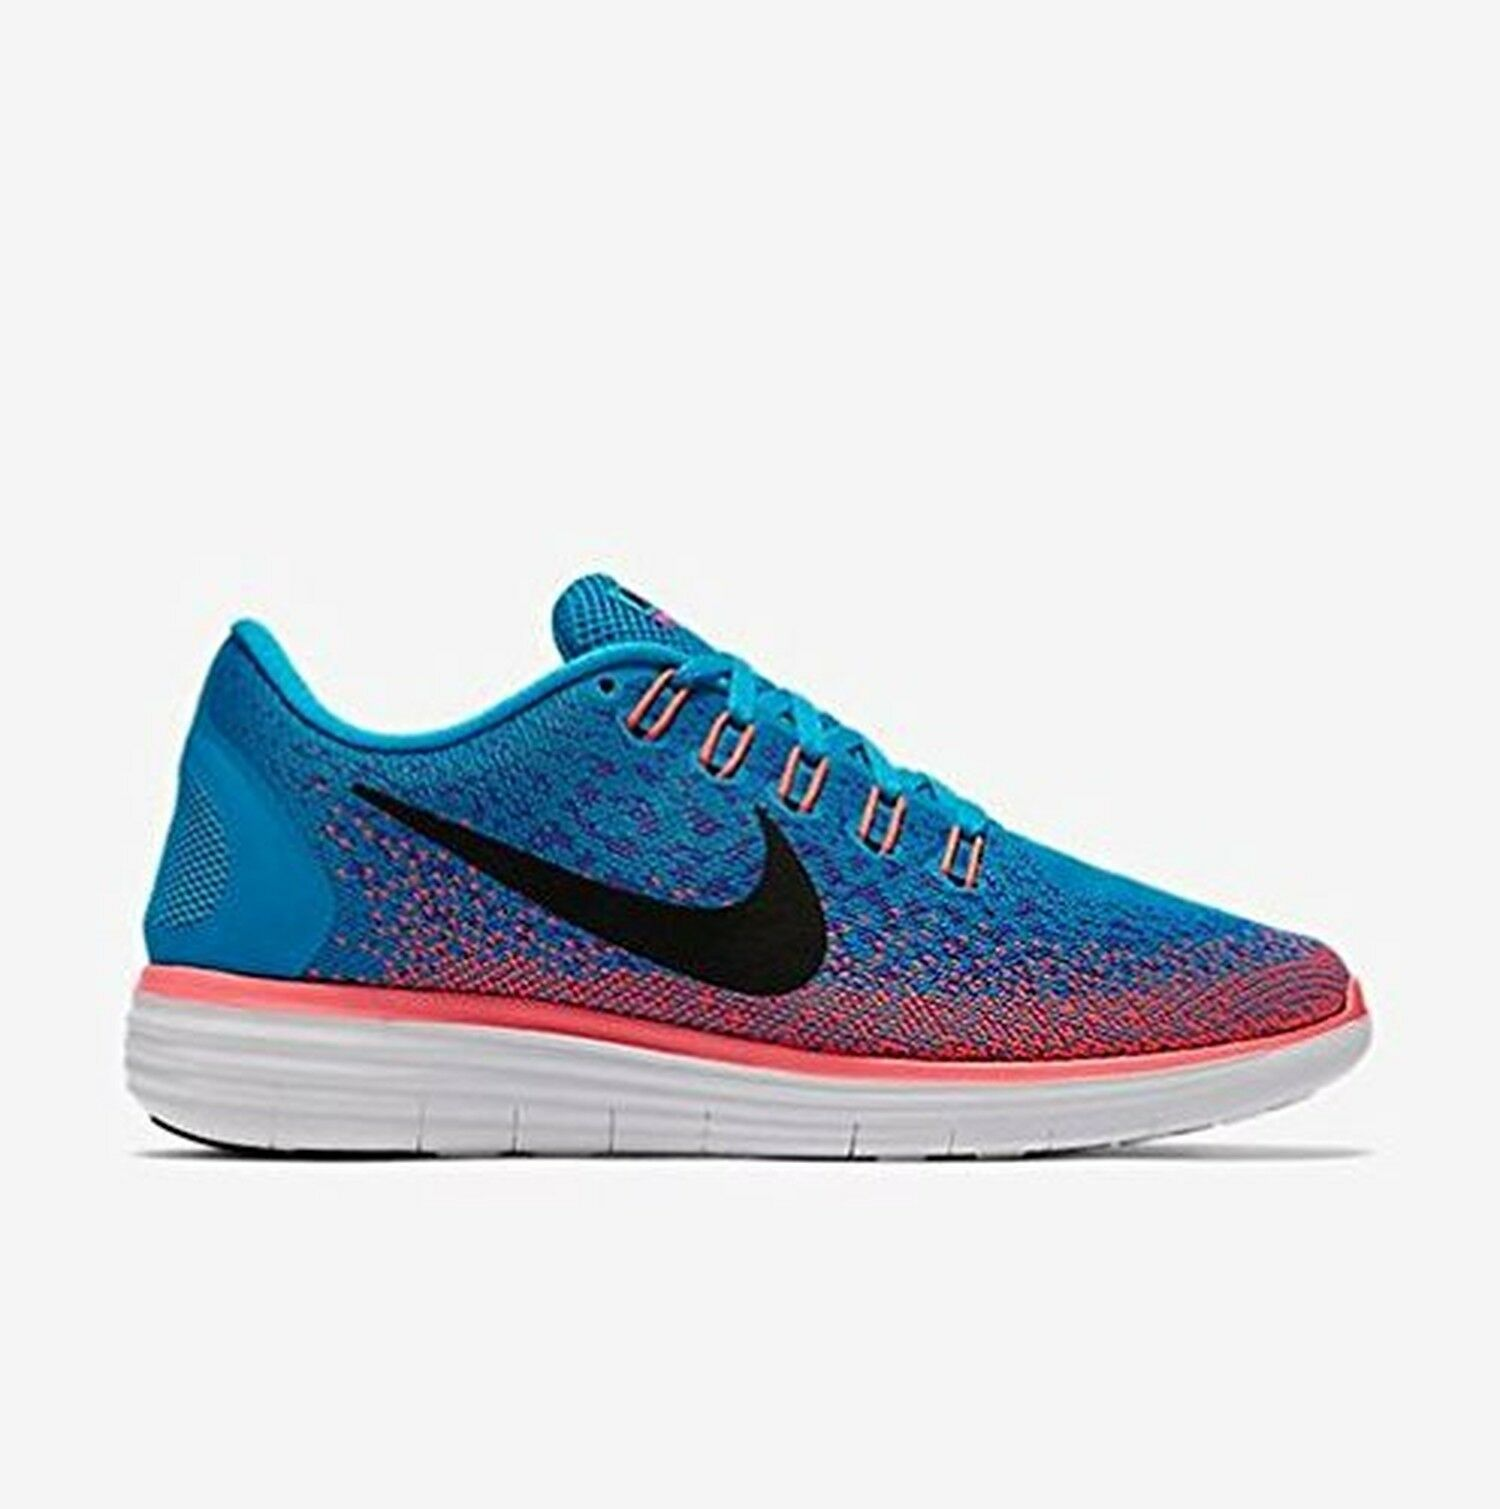 c3923dcd08c00 Nike Free Rn Distance Running shoes (7.5